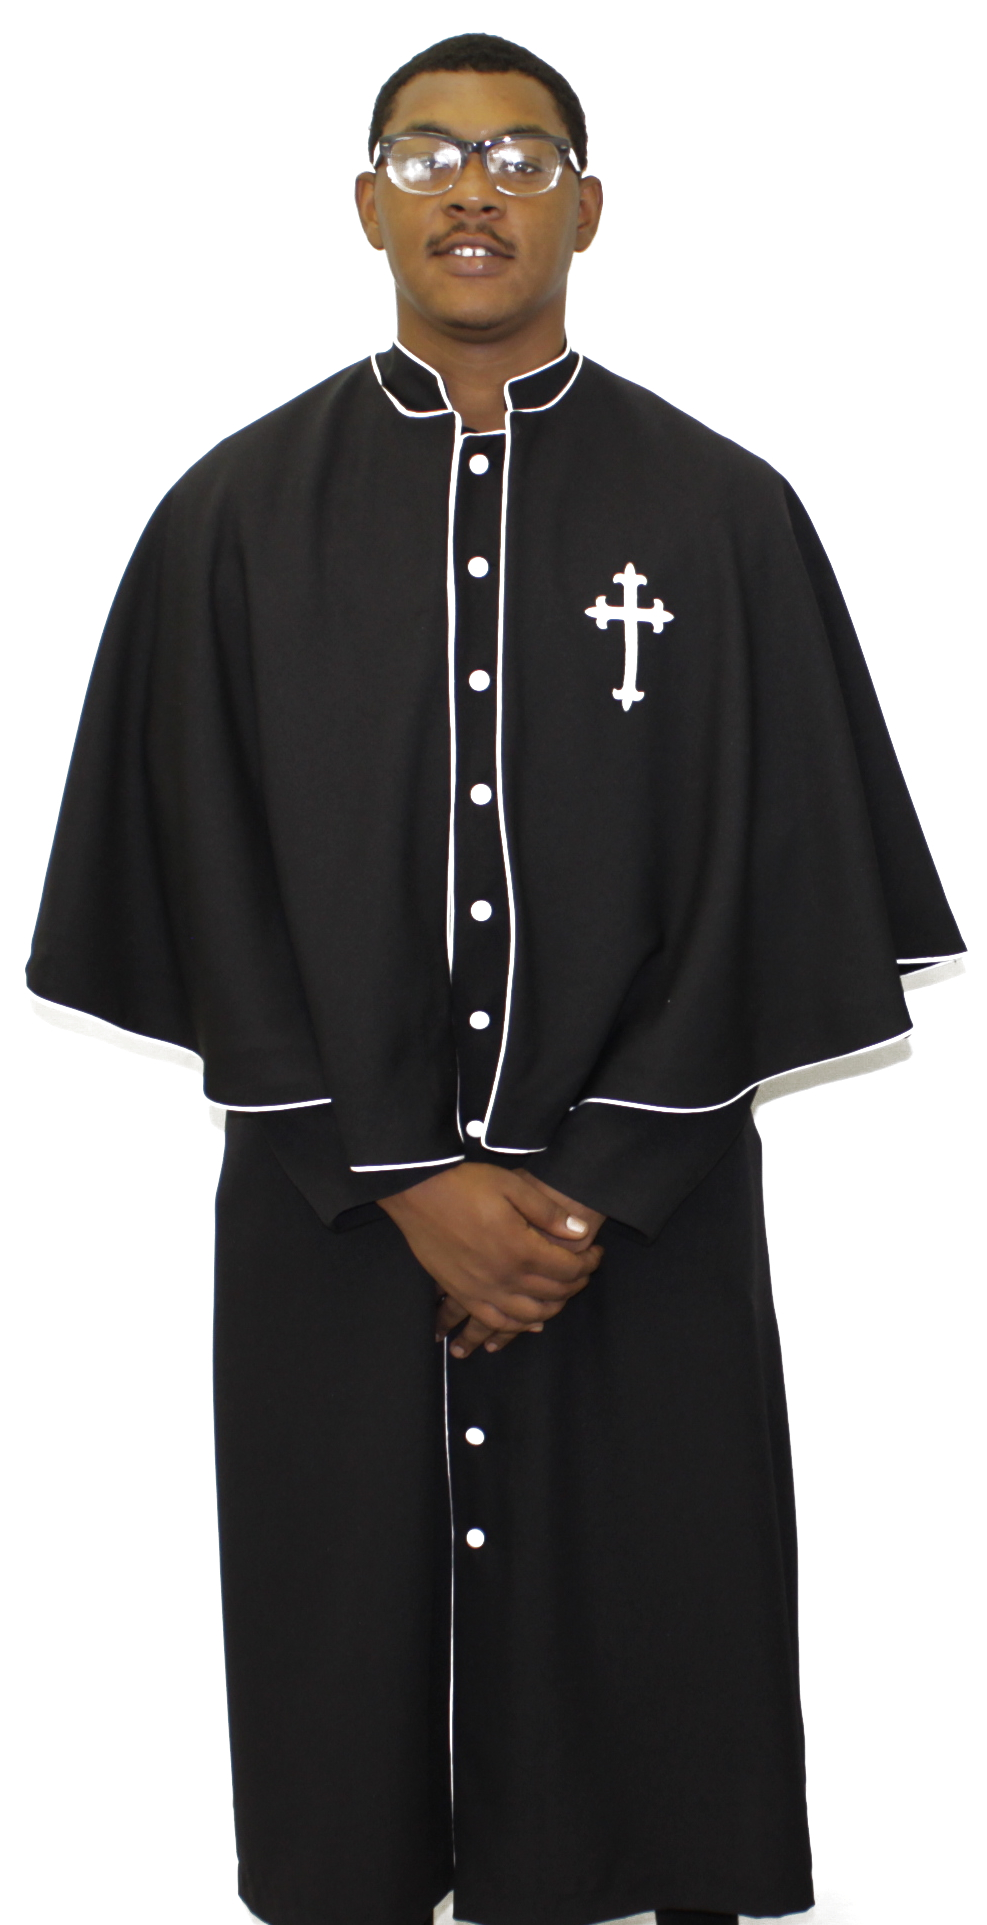 stephon with cape.jpg